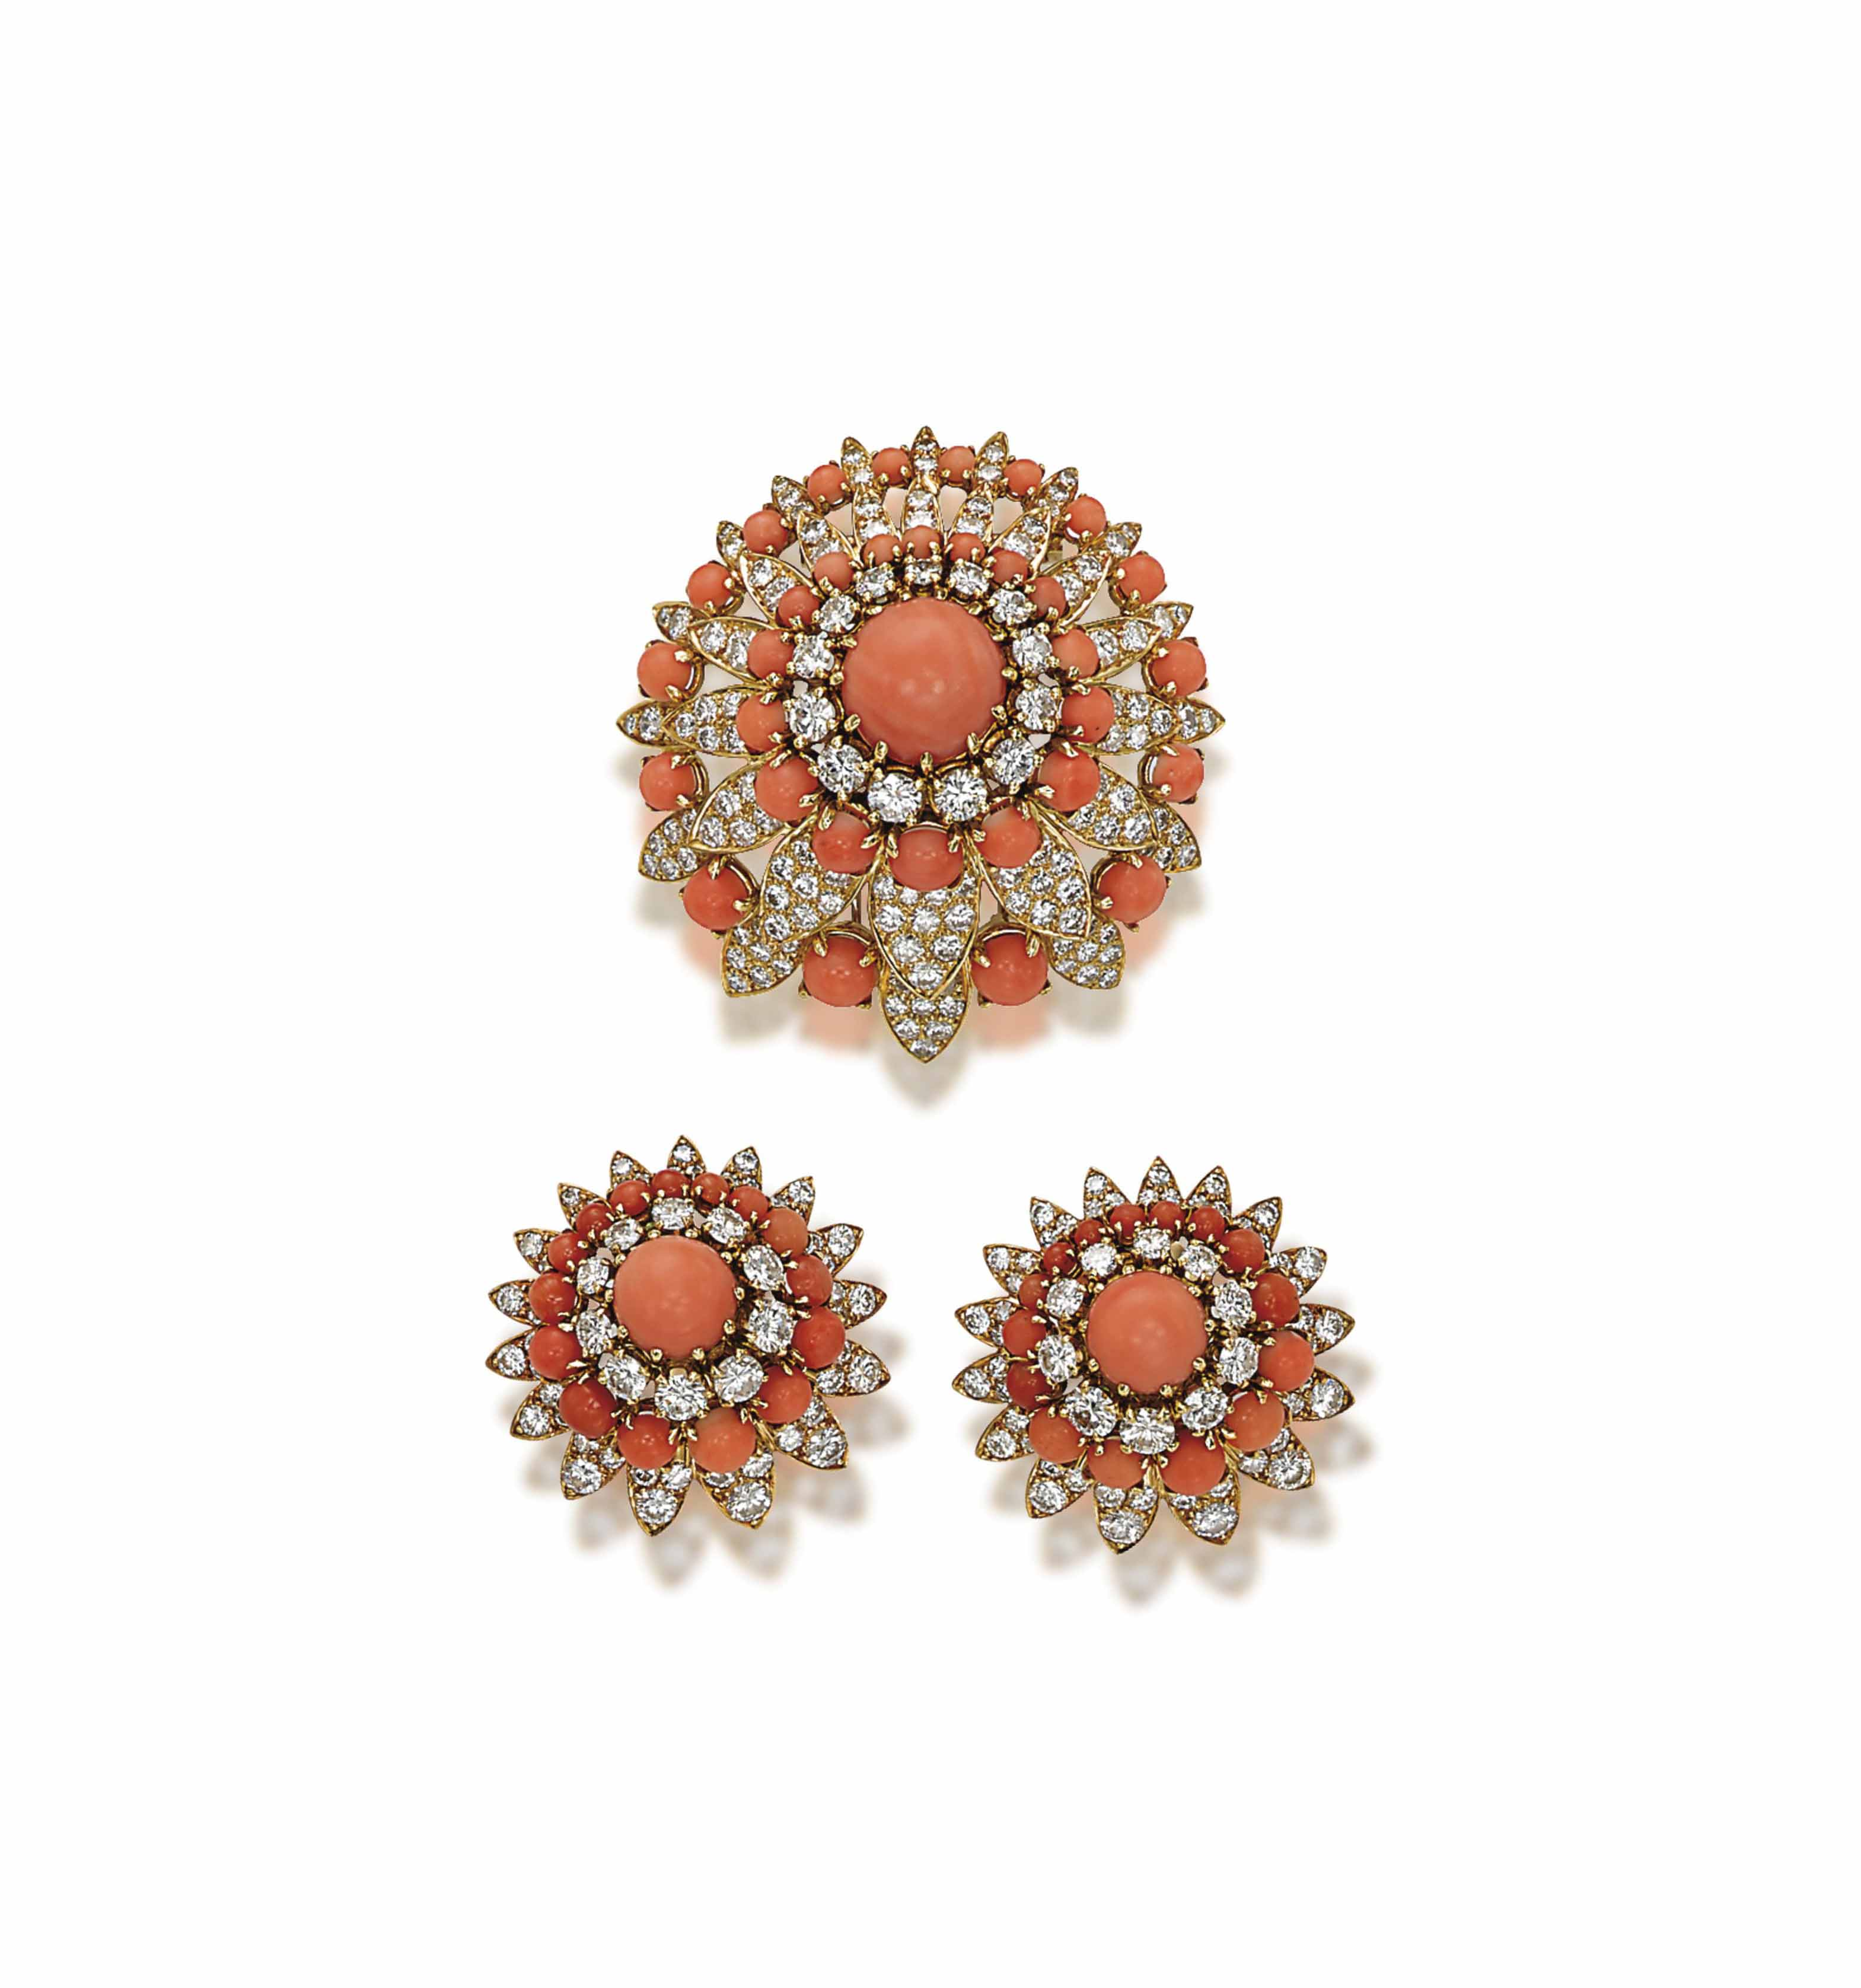 A SET OF CORAL AND DIAMOND JEW